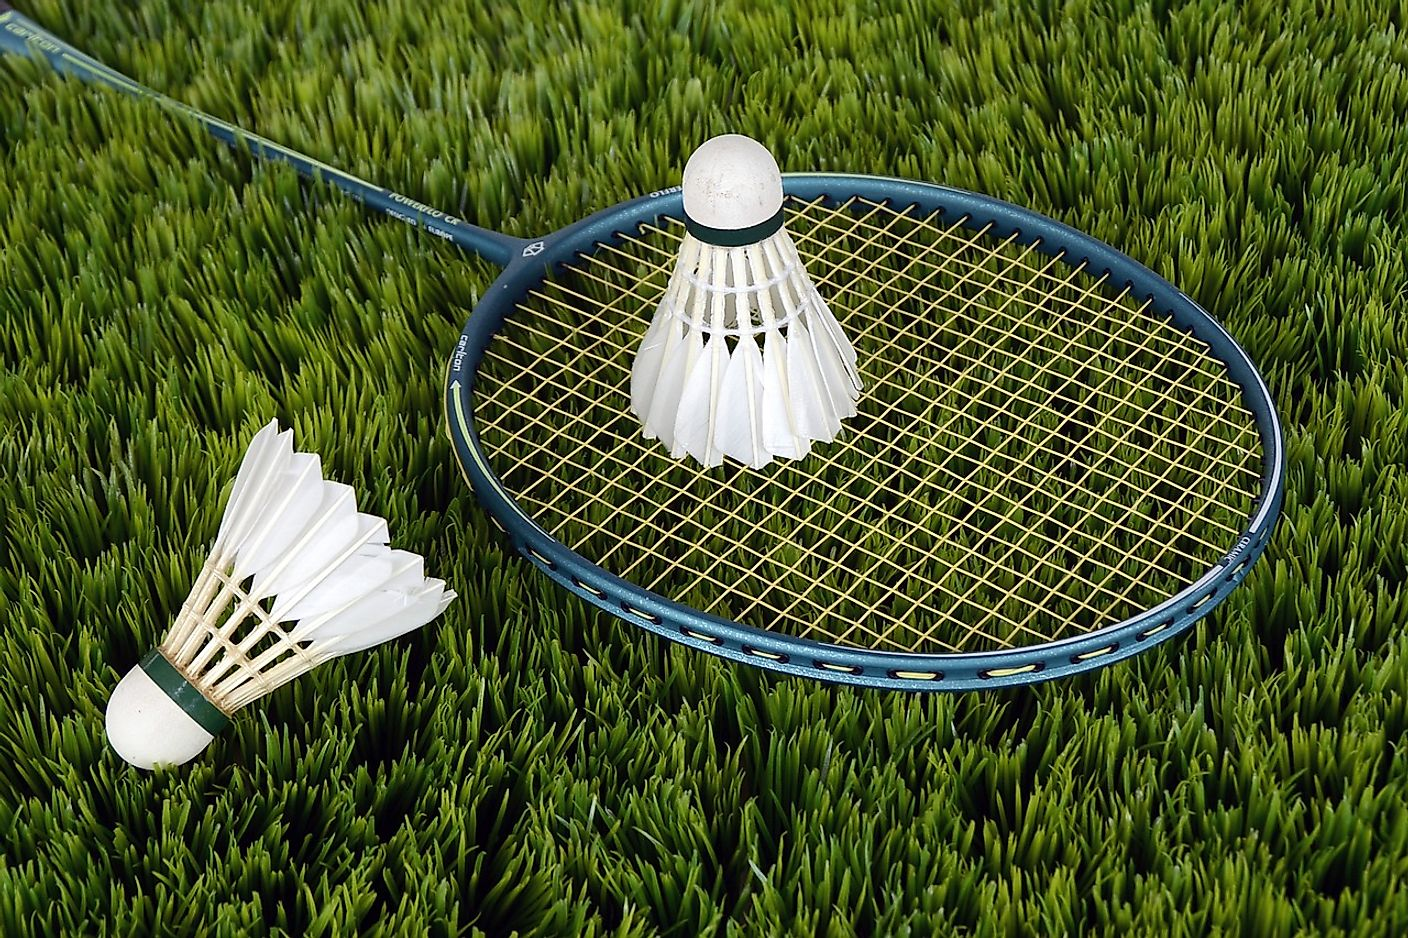 Badminton is played using a shuttlecock and racquet.